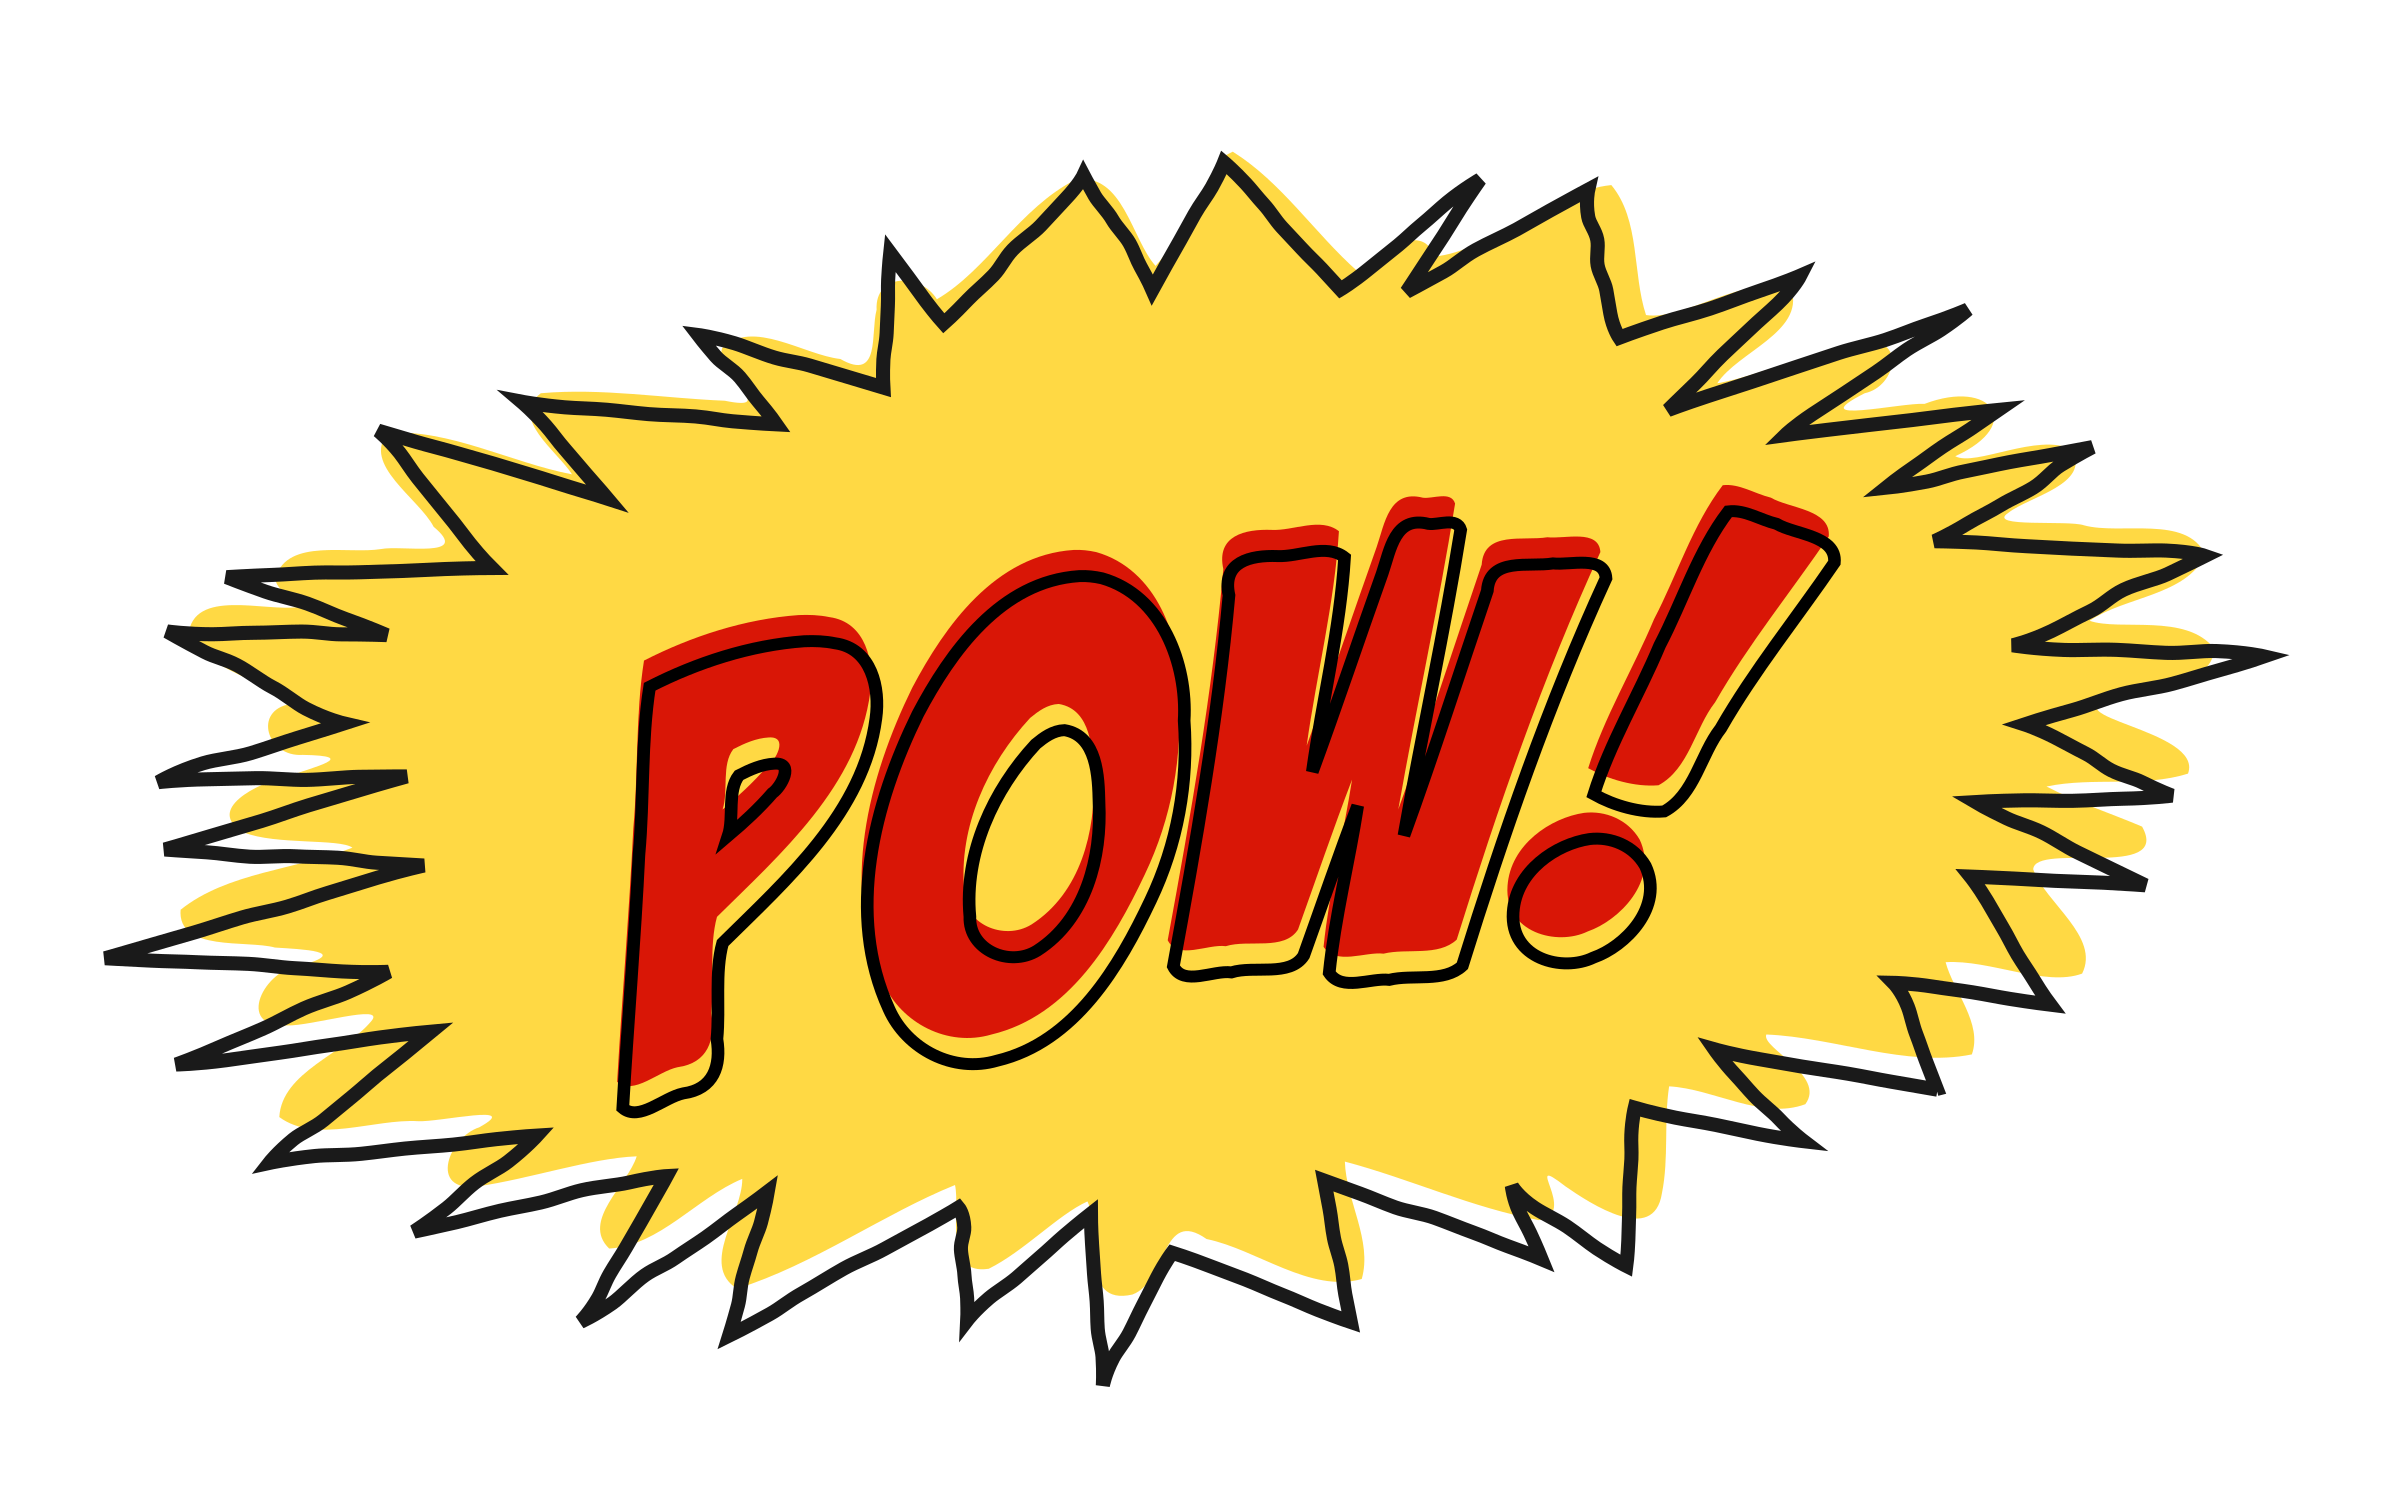 Comic book noises clipart clip black and white download Pow comic book sound effect no background Icons PNG - Free PNG and ... clip black and white download